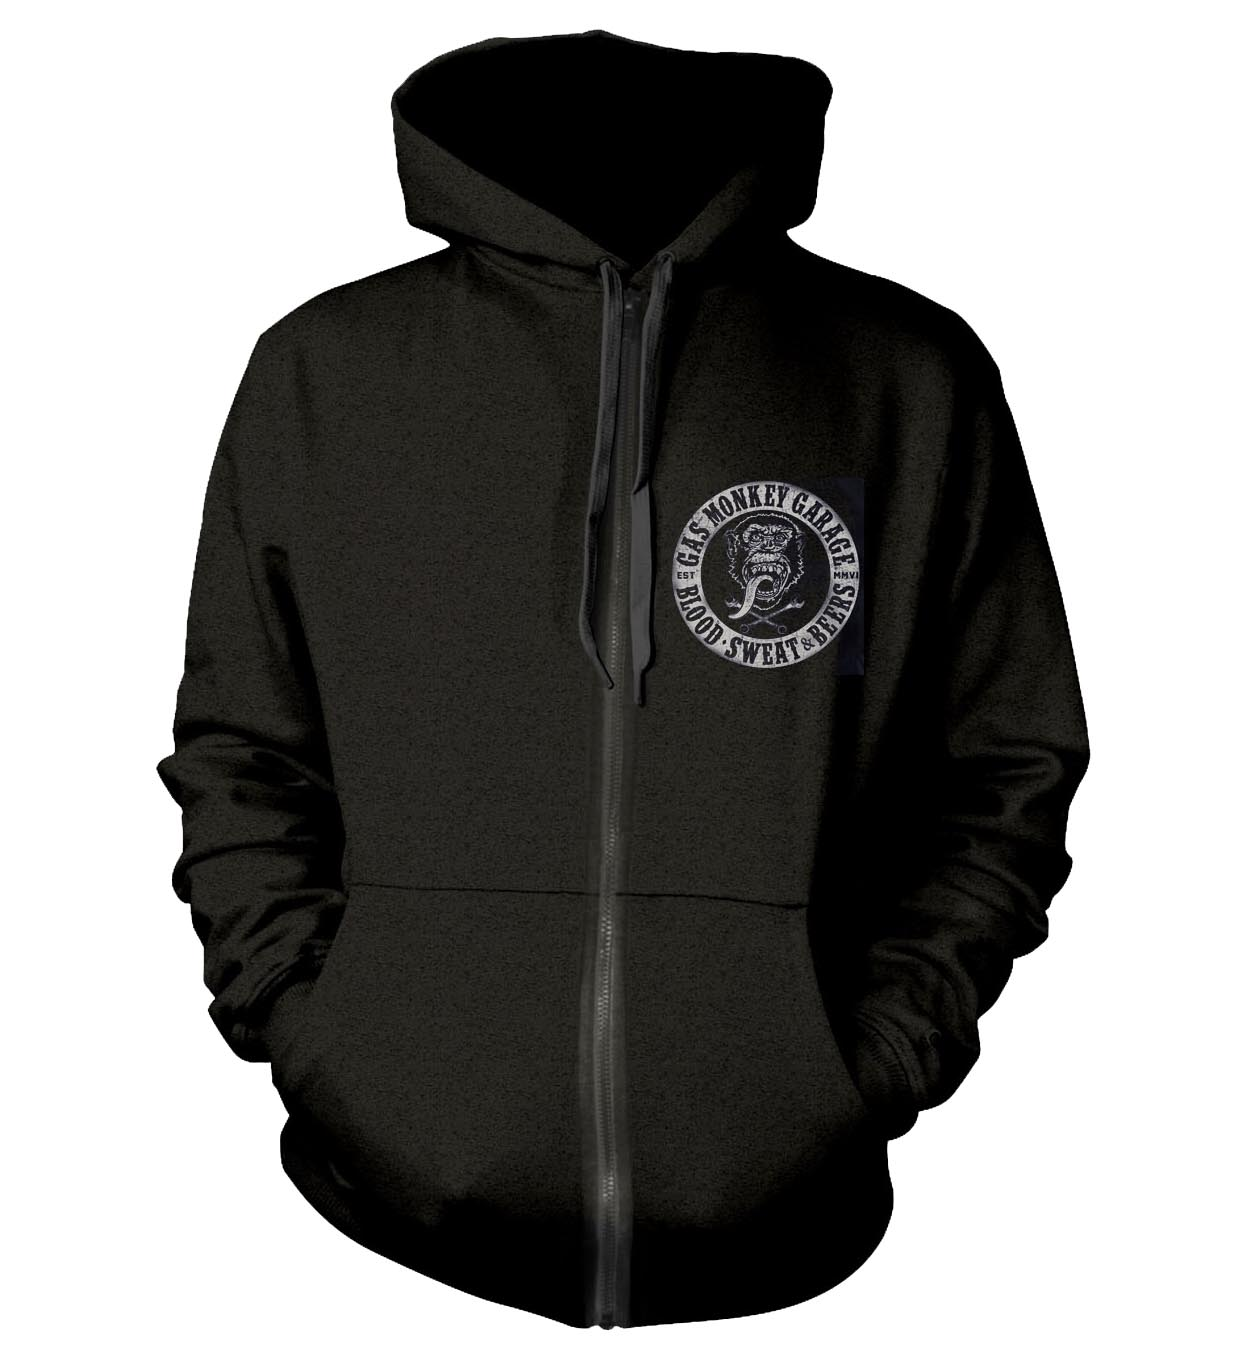 Official-PH-GAS-MONKEY-GARAGE-Hoody-Hoodie-Distressed-LOGO-Zip-All-Sizes thumbnail 15